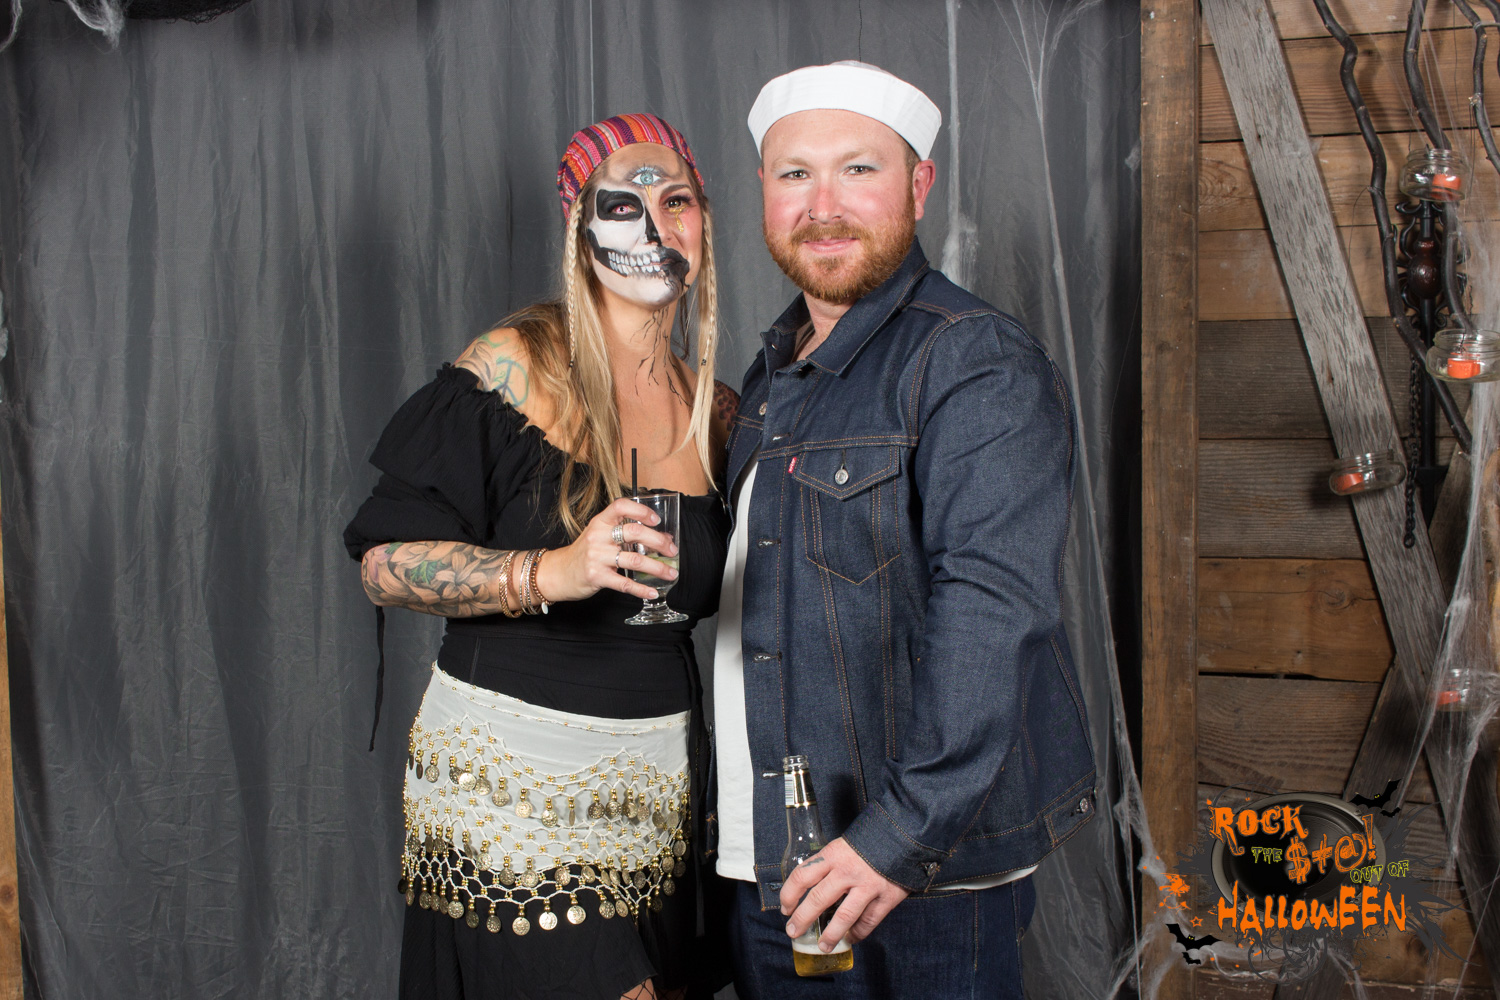 Halloween-PhotoBooth-024-6747